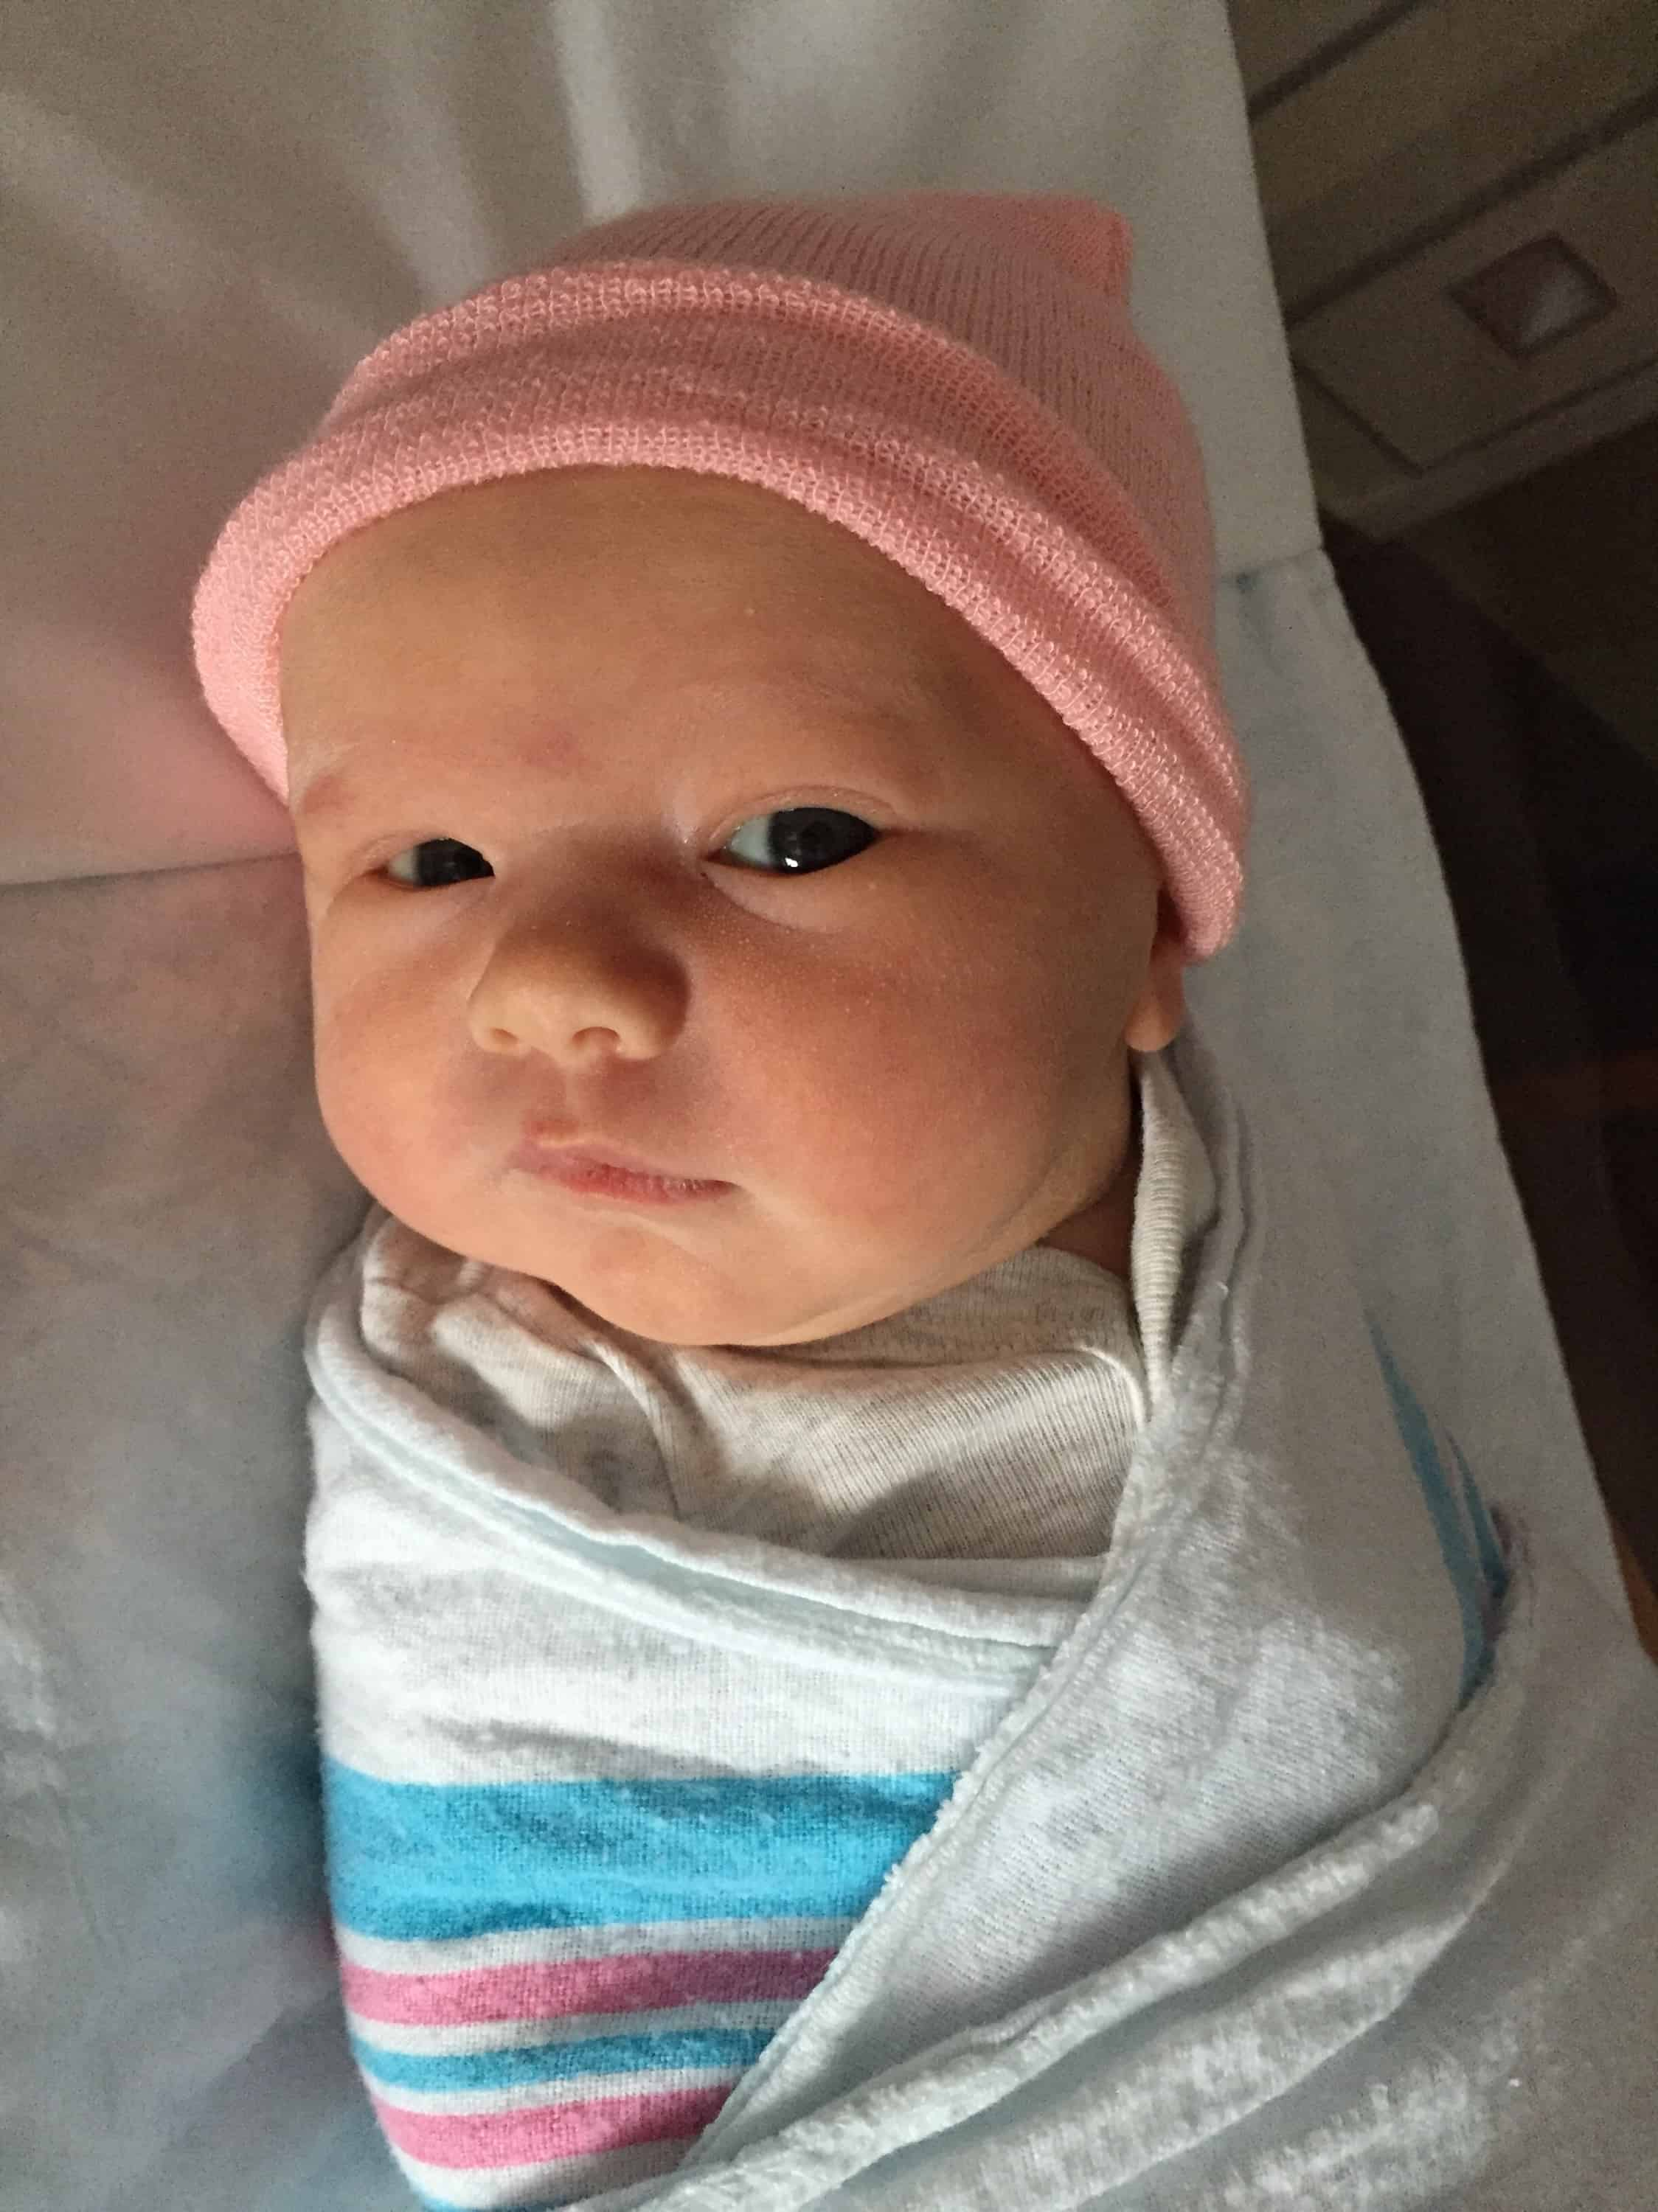 newborn baby in pink hat